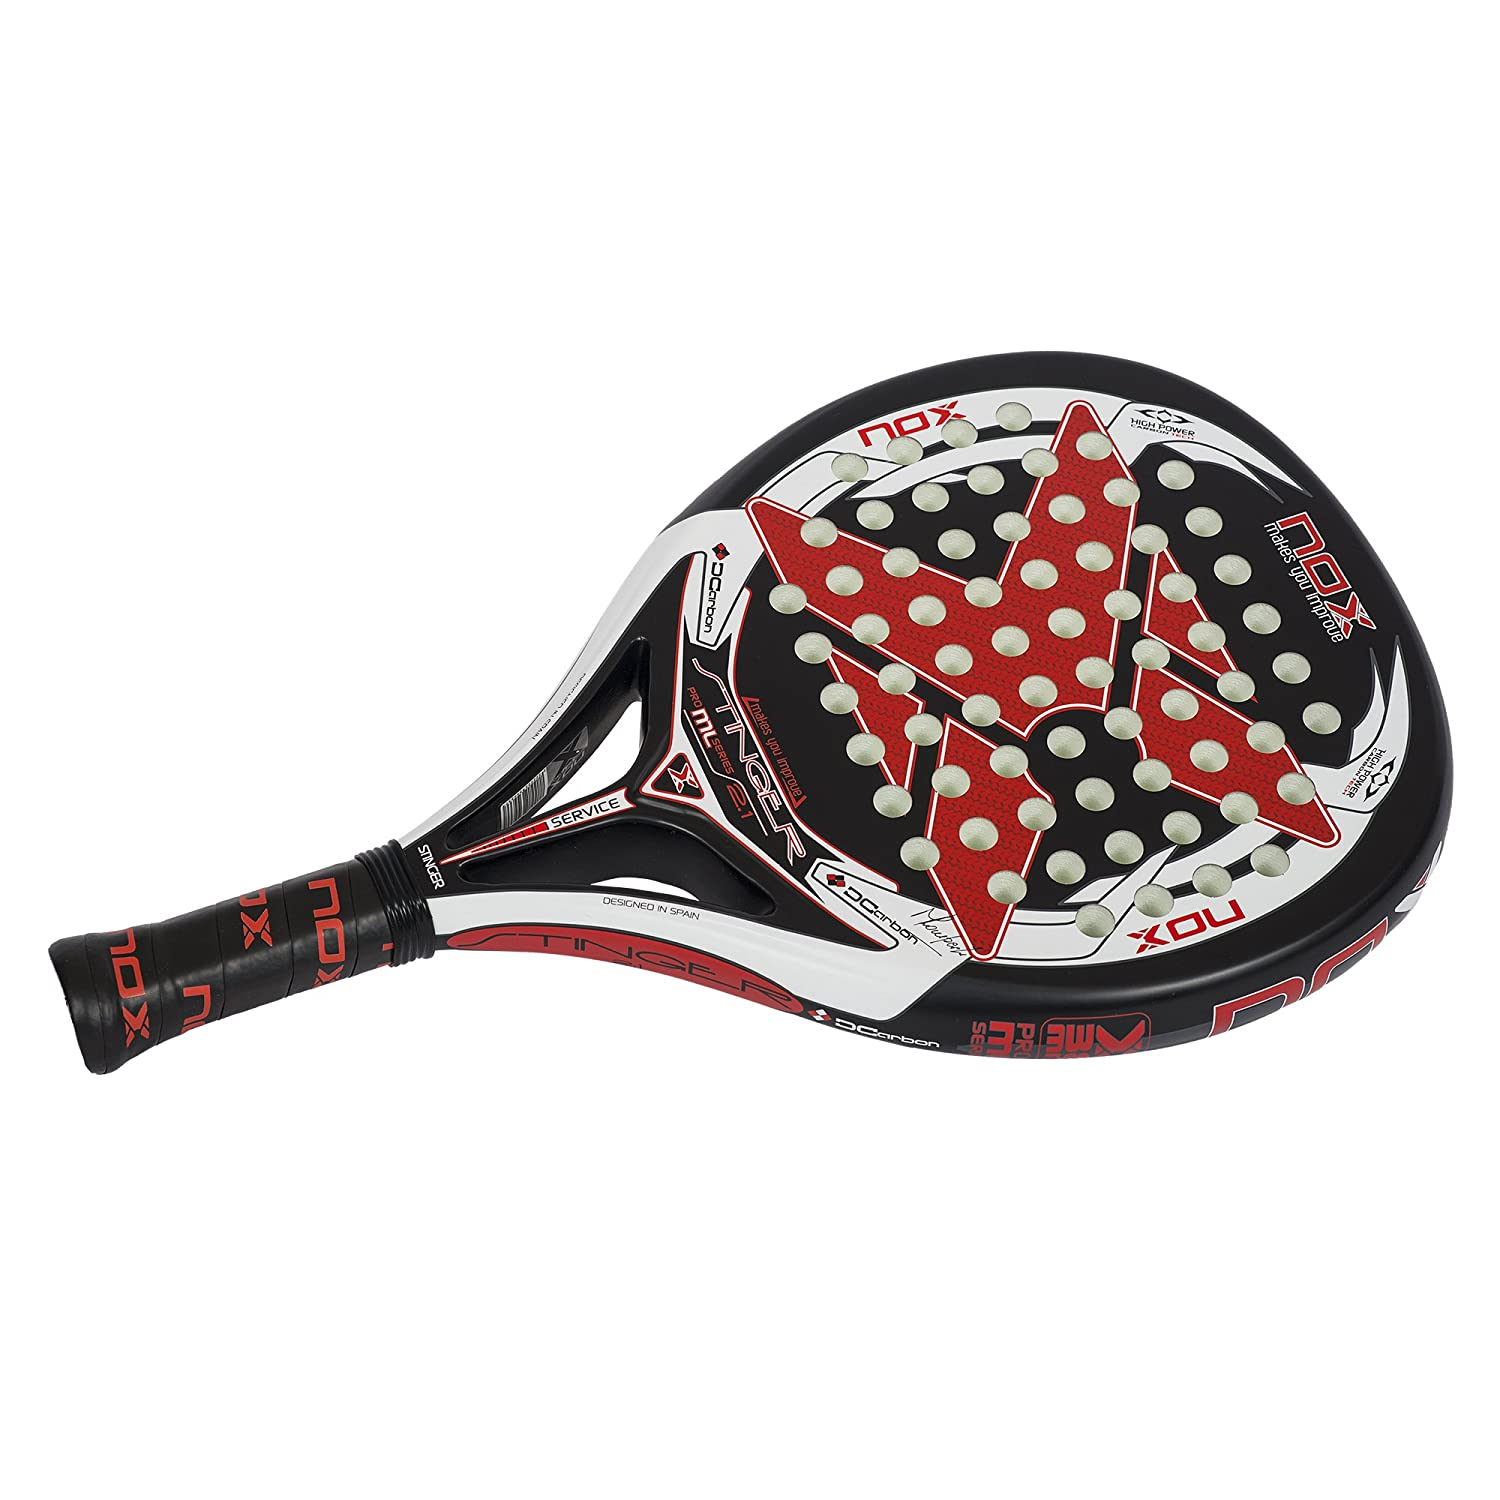 Amazon.com : NOX Stinger 2.1 Padel Tennis Racquet, Black ...